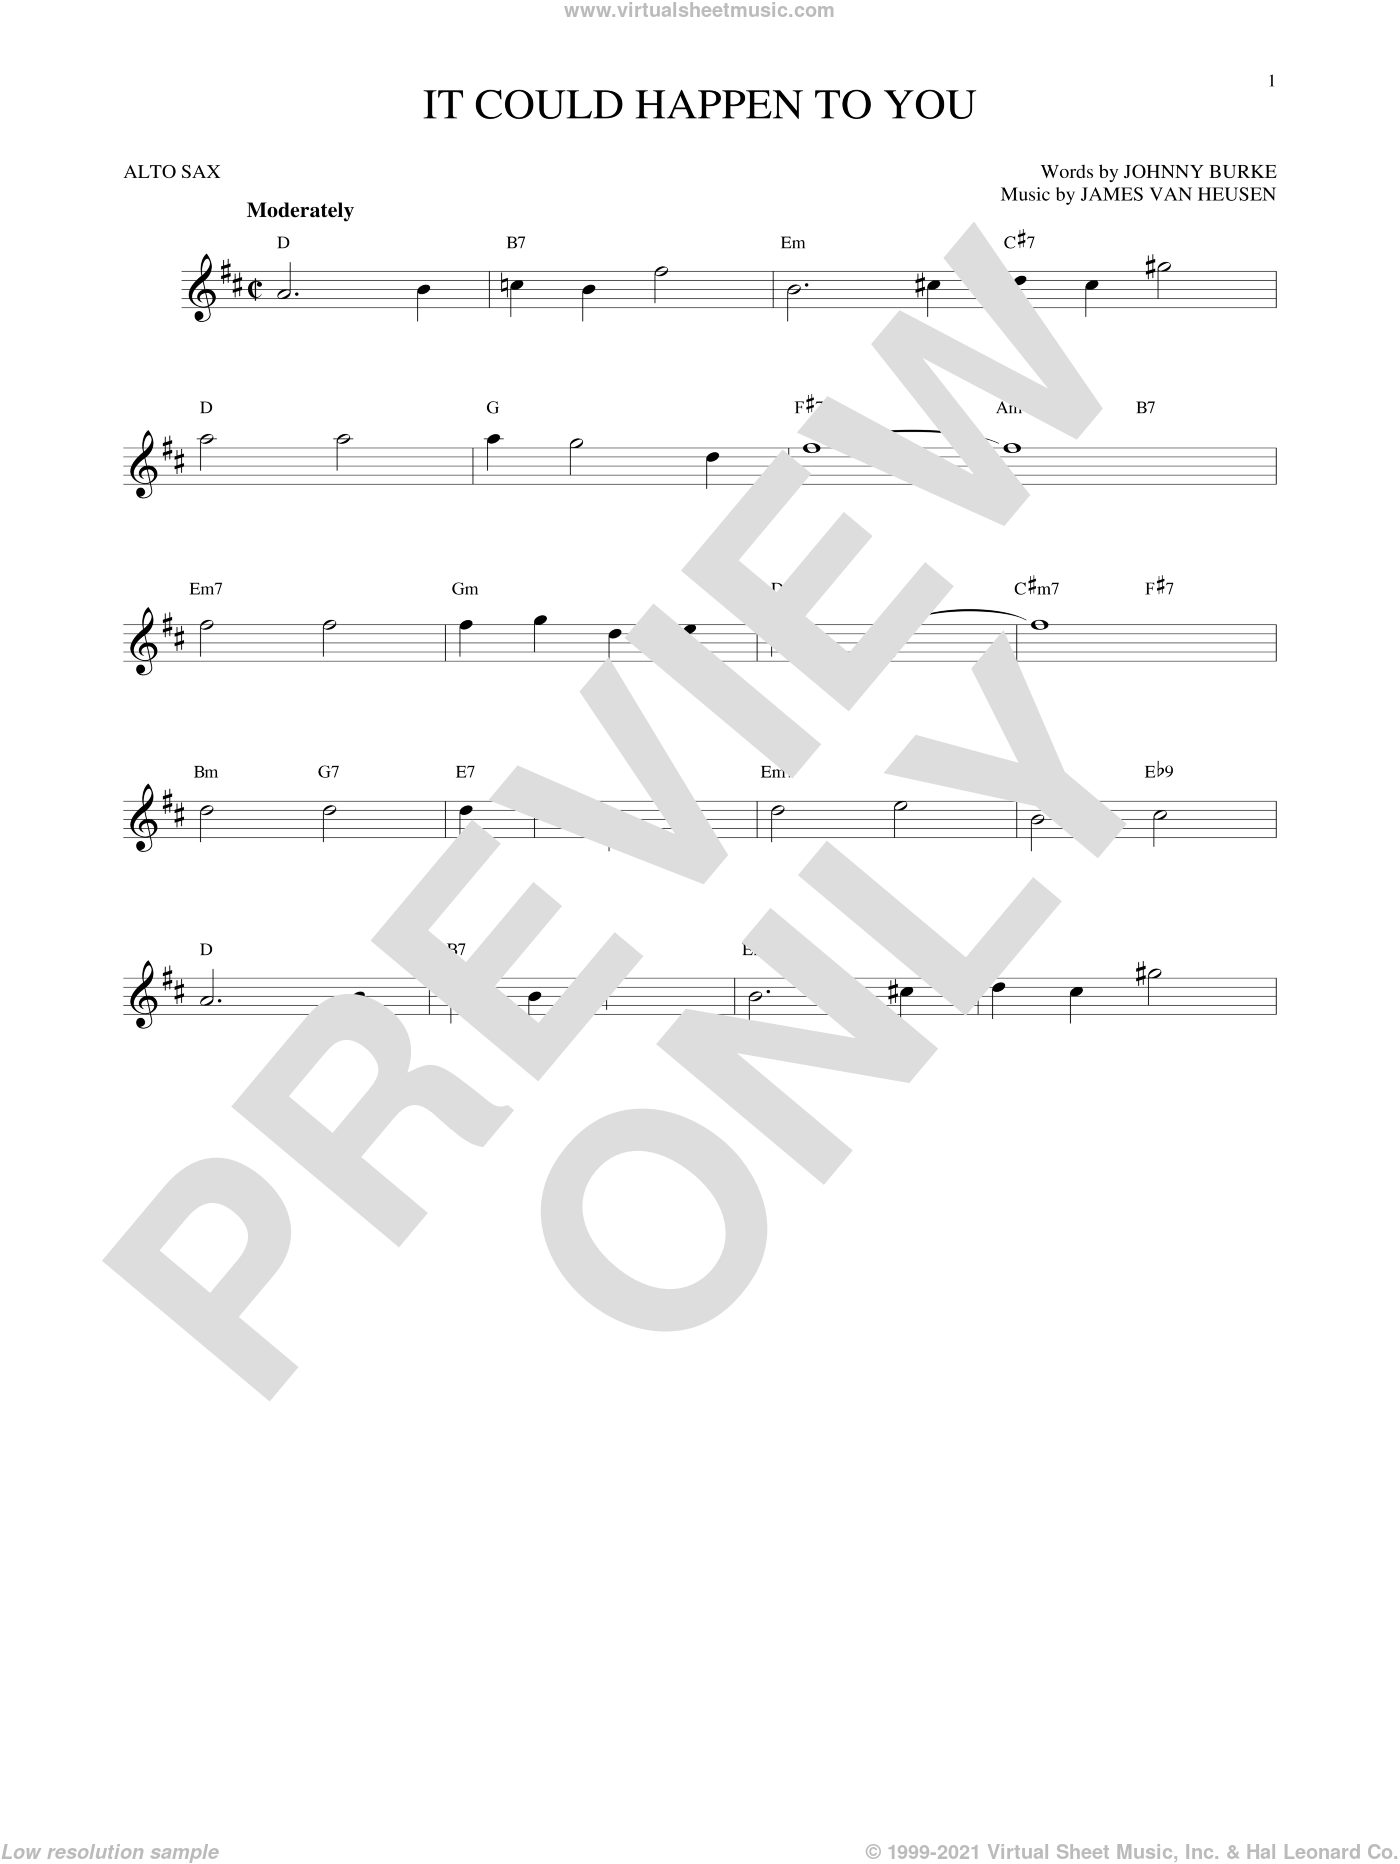 It Could Happen To You sheet music for alto saxophone solo by Jimmy van Heusen, June Christy and John Burke, intermediate skill level